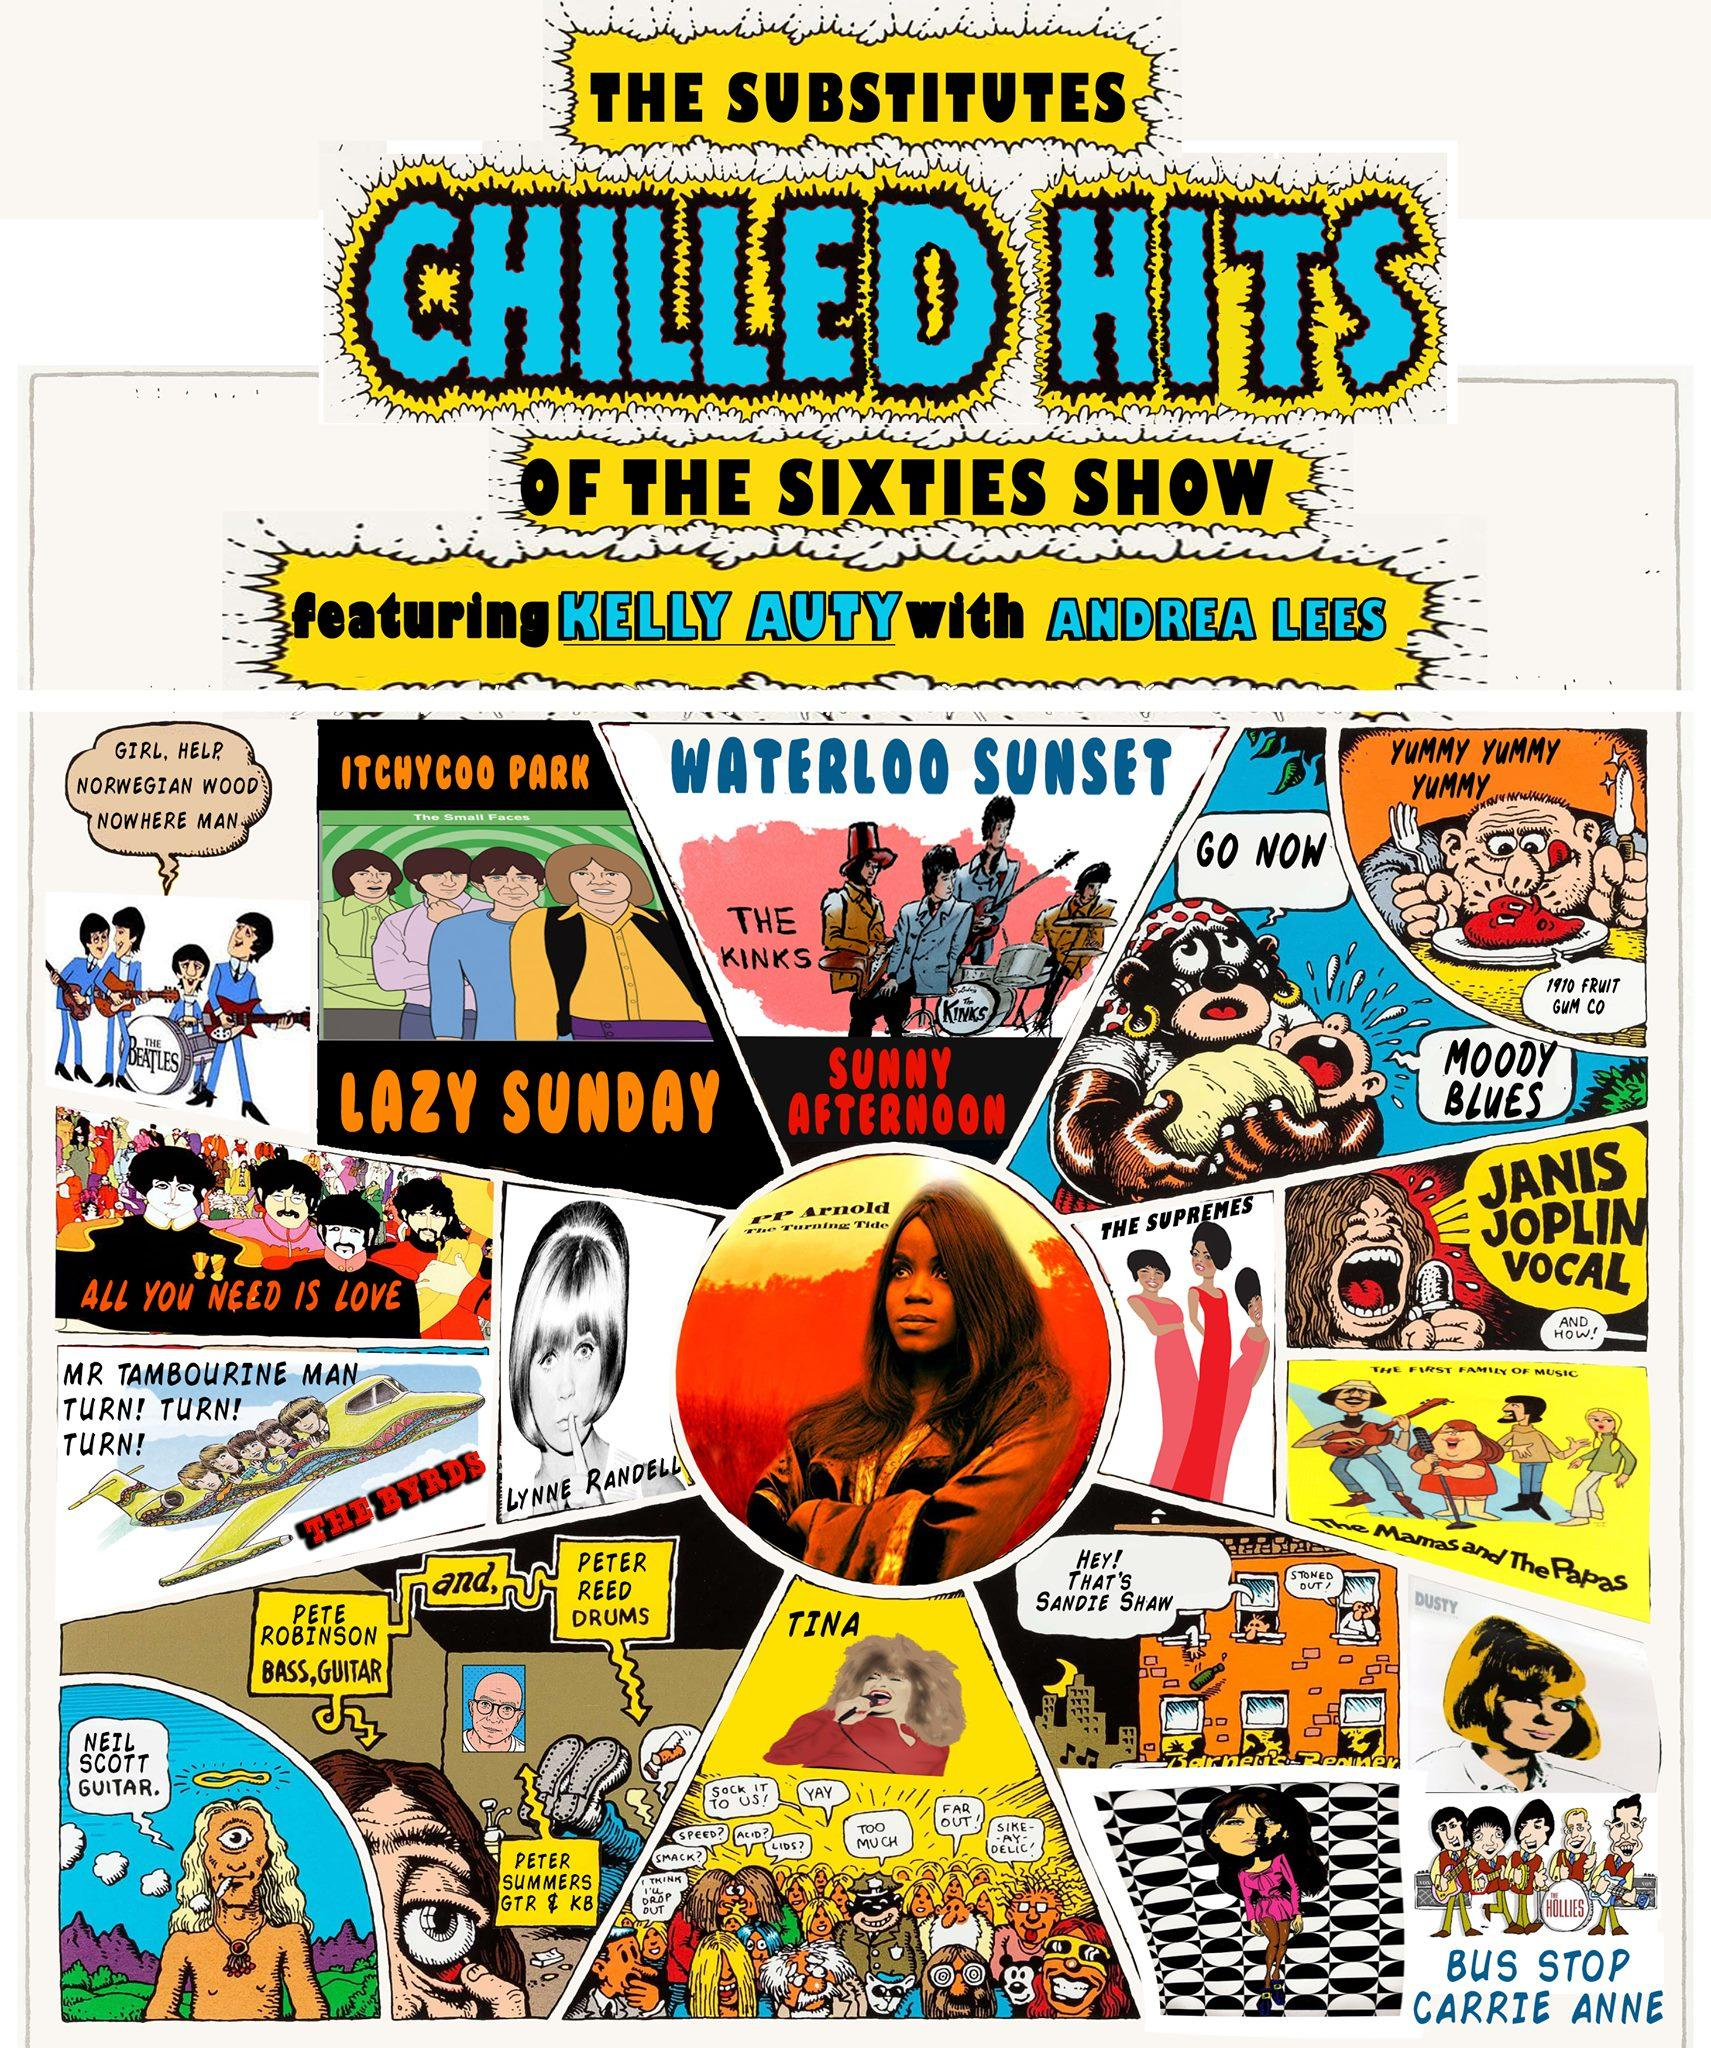 The Substitutes featuring Kelly Auty- Chilled Hits Of The 60's - Dinner & Show